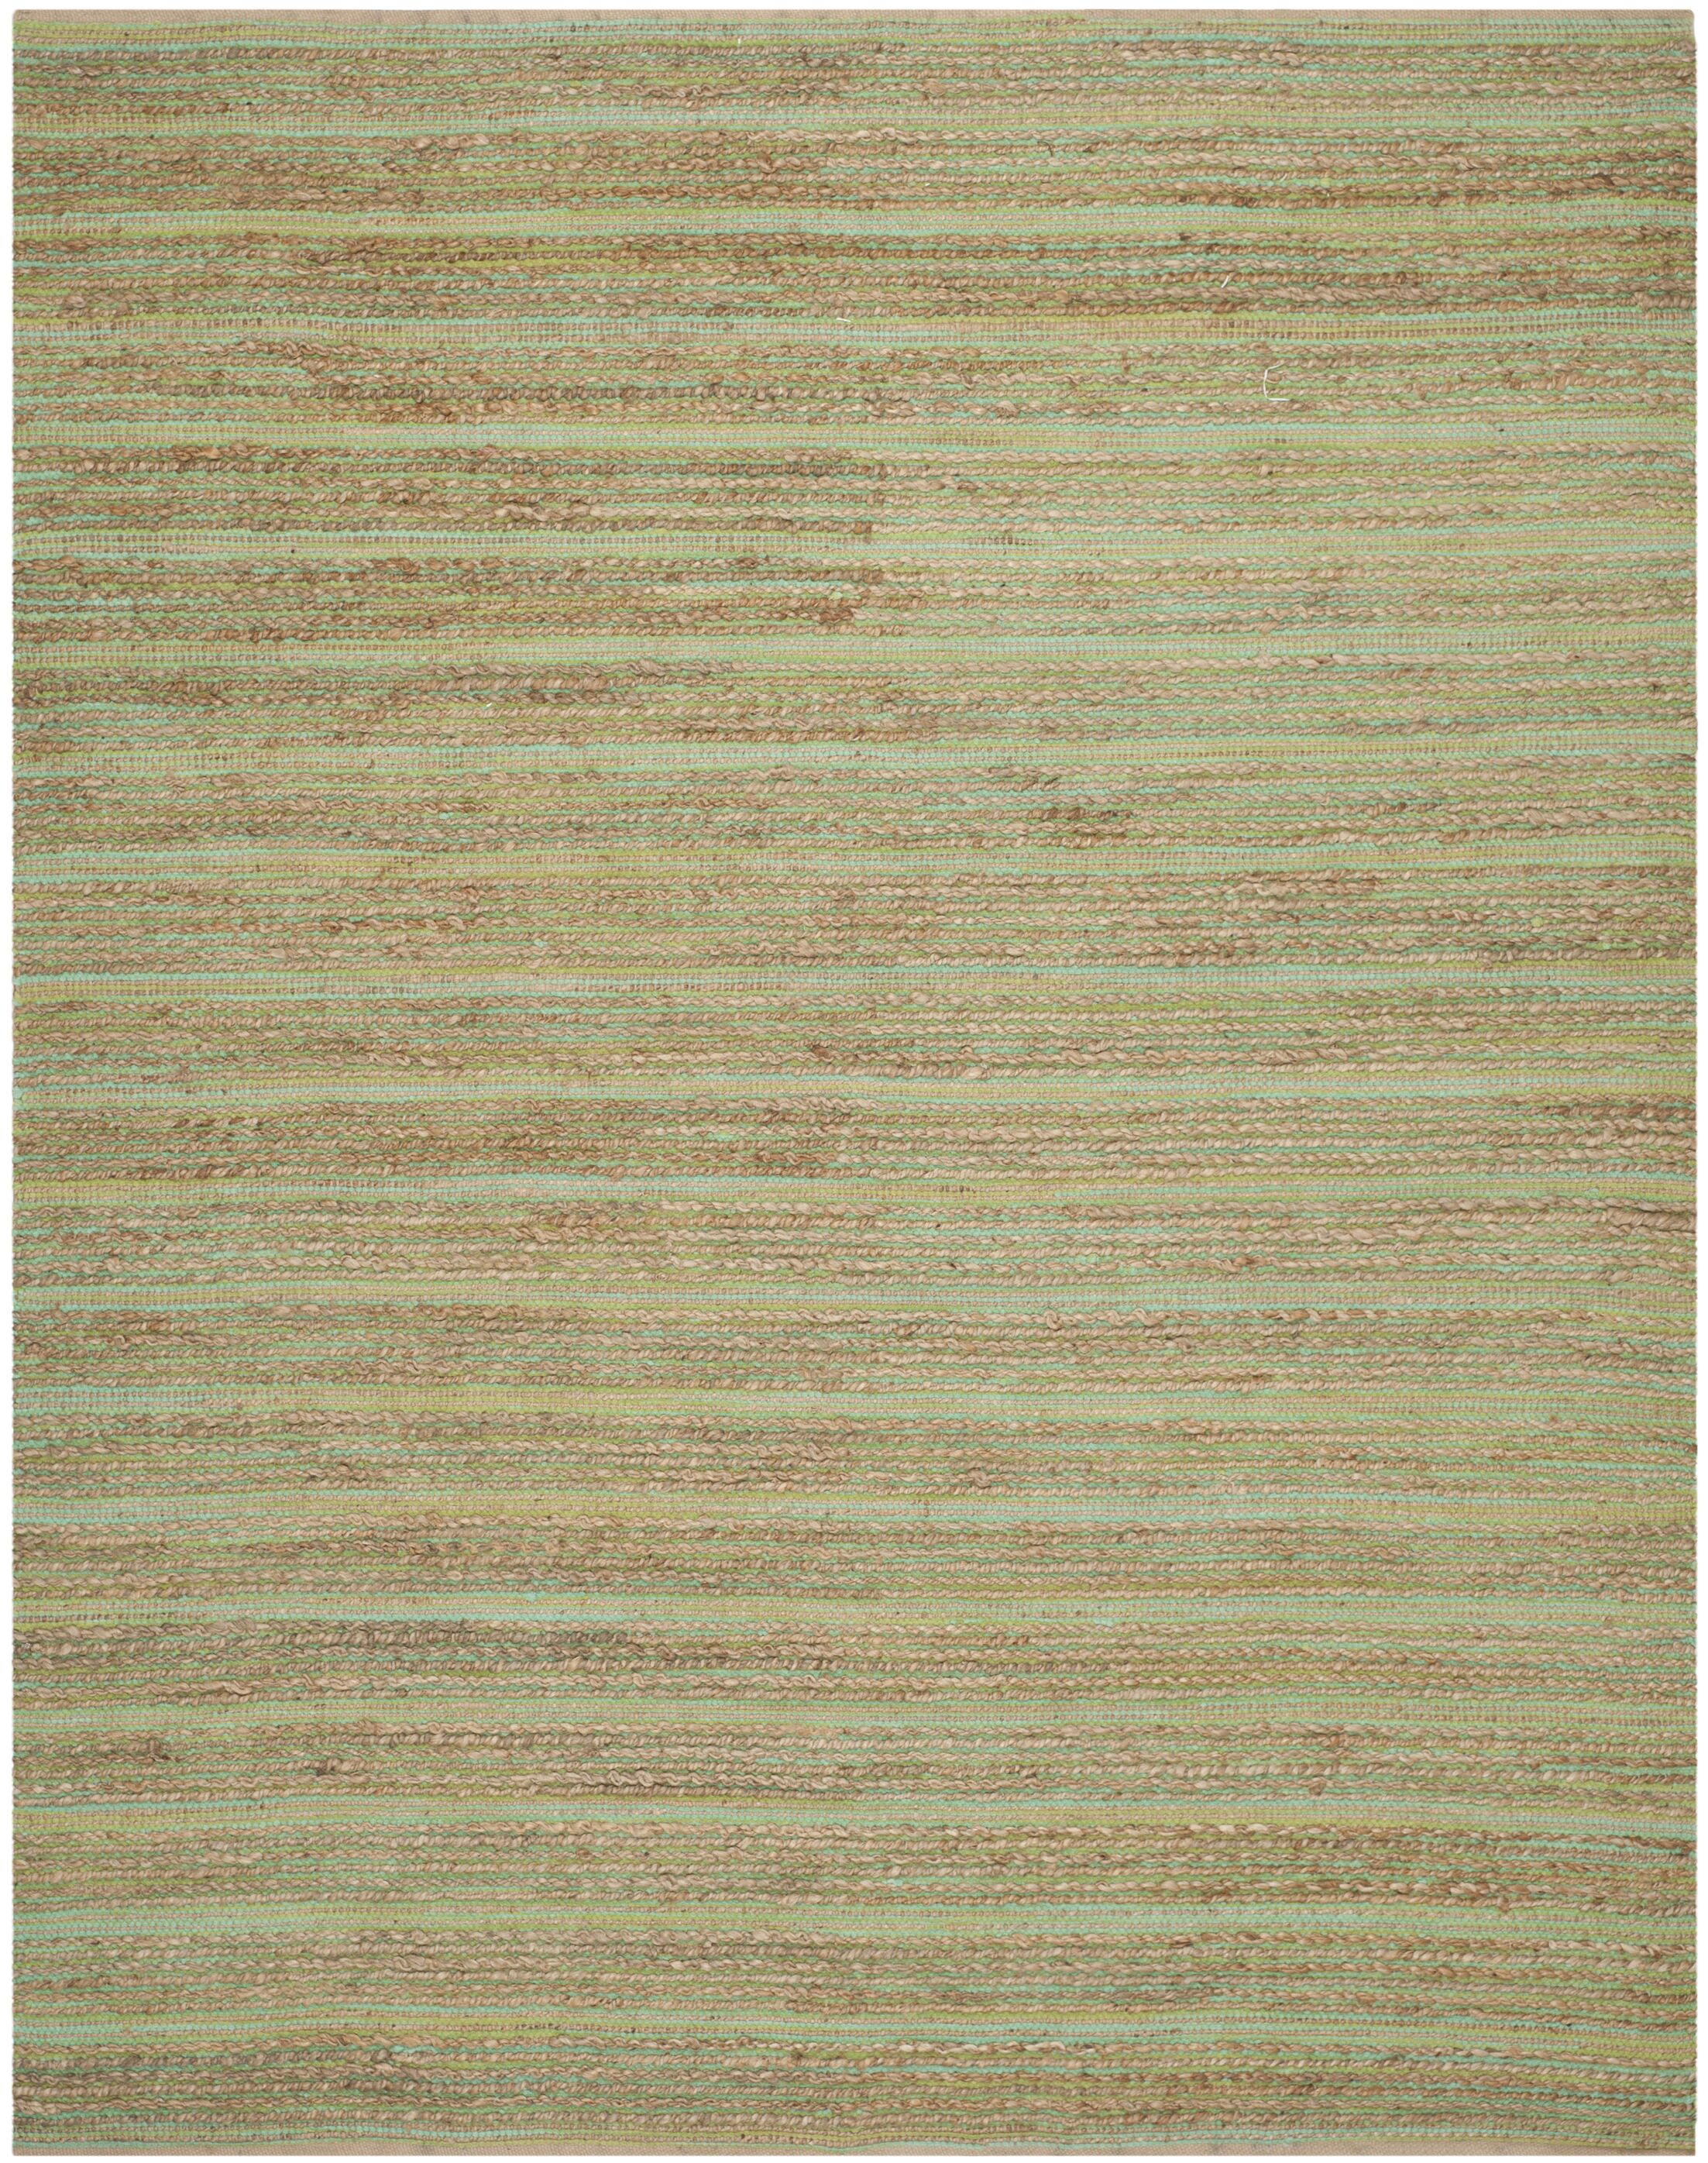 Abia Hand-Woven Light Green Area Rug Rug Size: Rectangle 8' x 10'